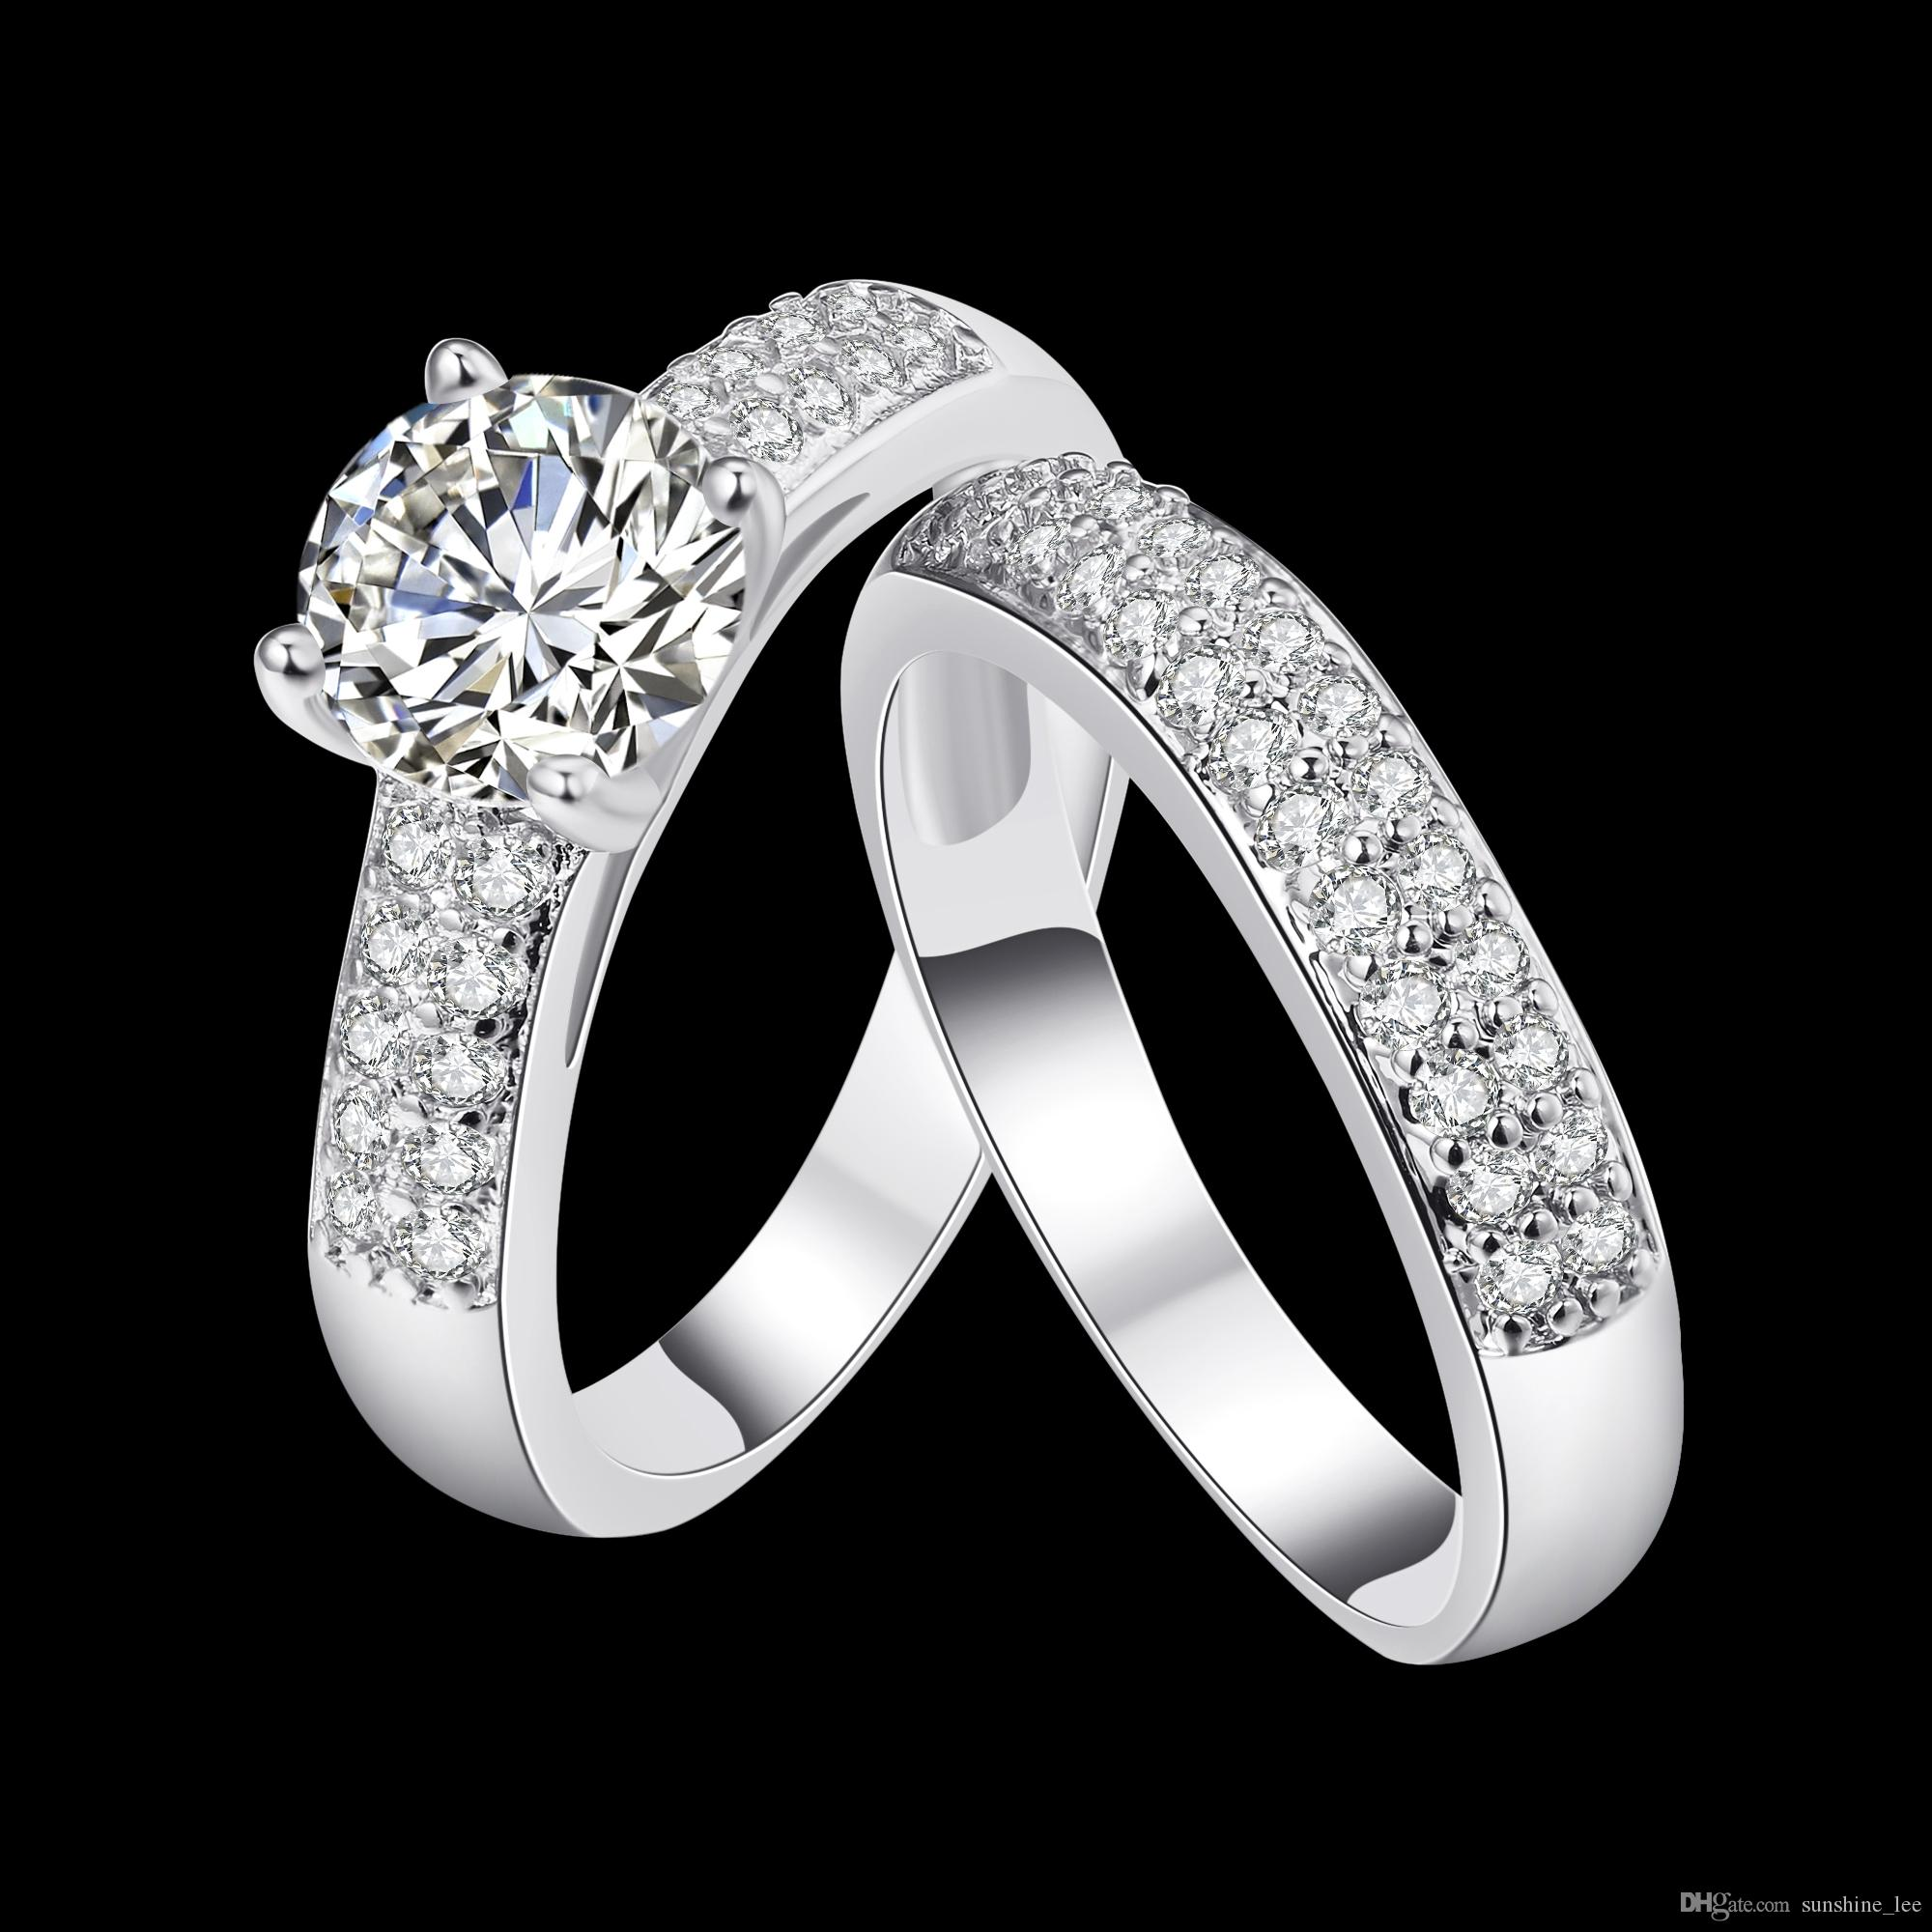 Nidalee Luxury Round Rings Fashion Full Drill Zircon Crystal From Swarovski Rings Women Rings Jewelry For Party wedding